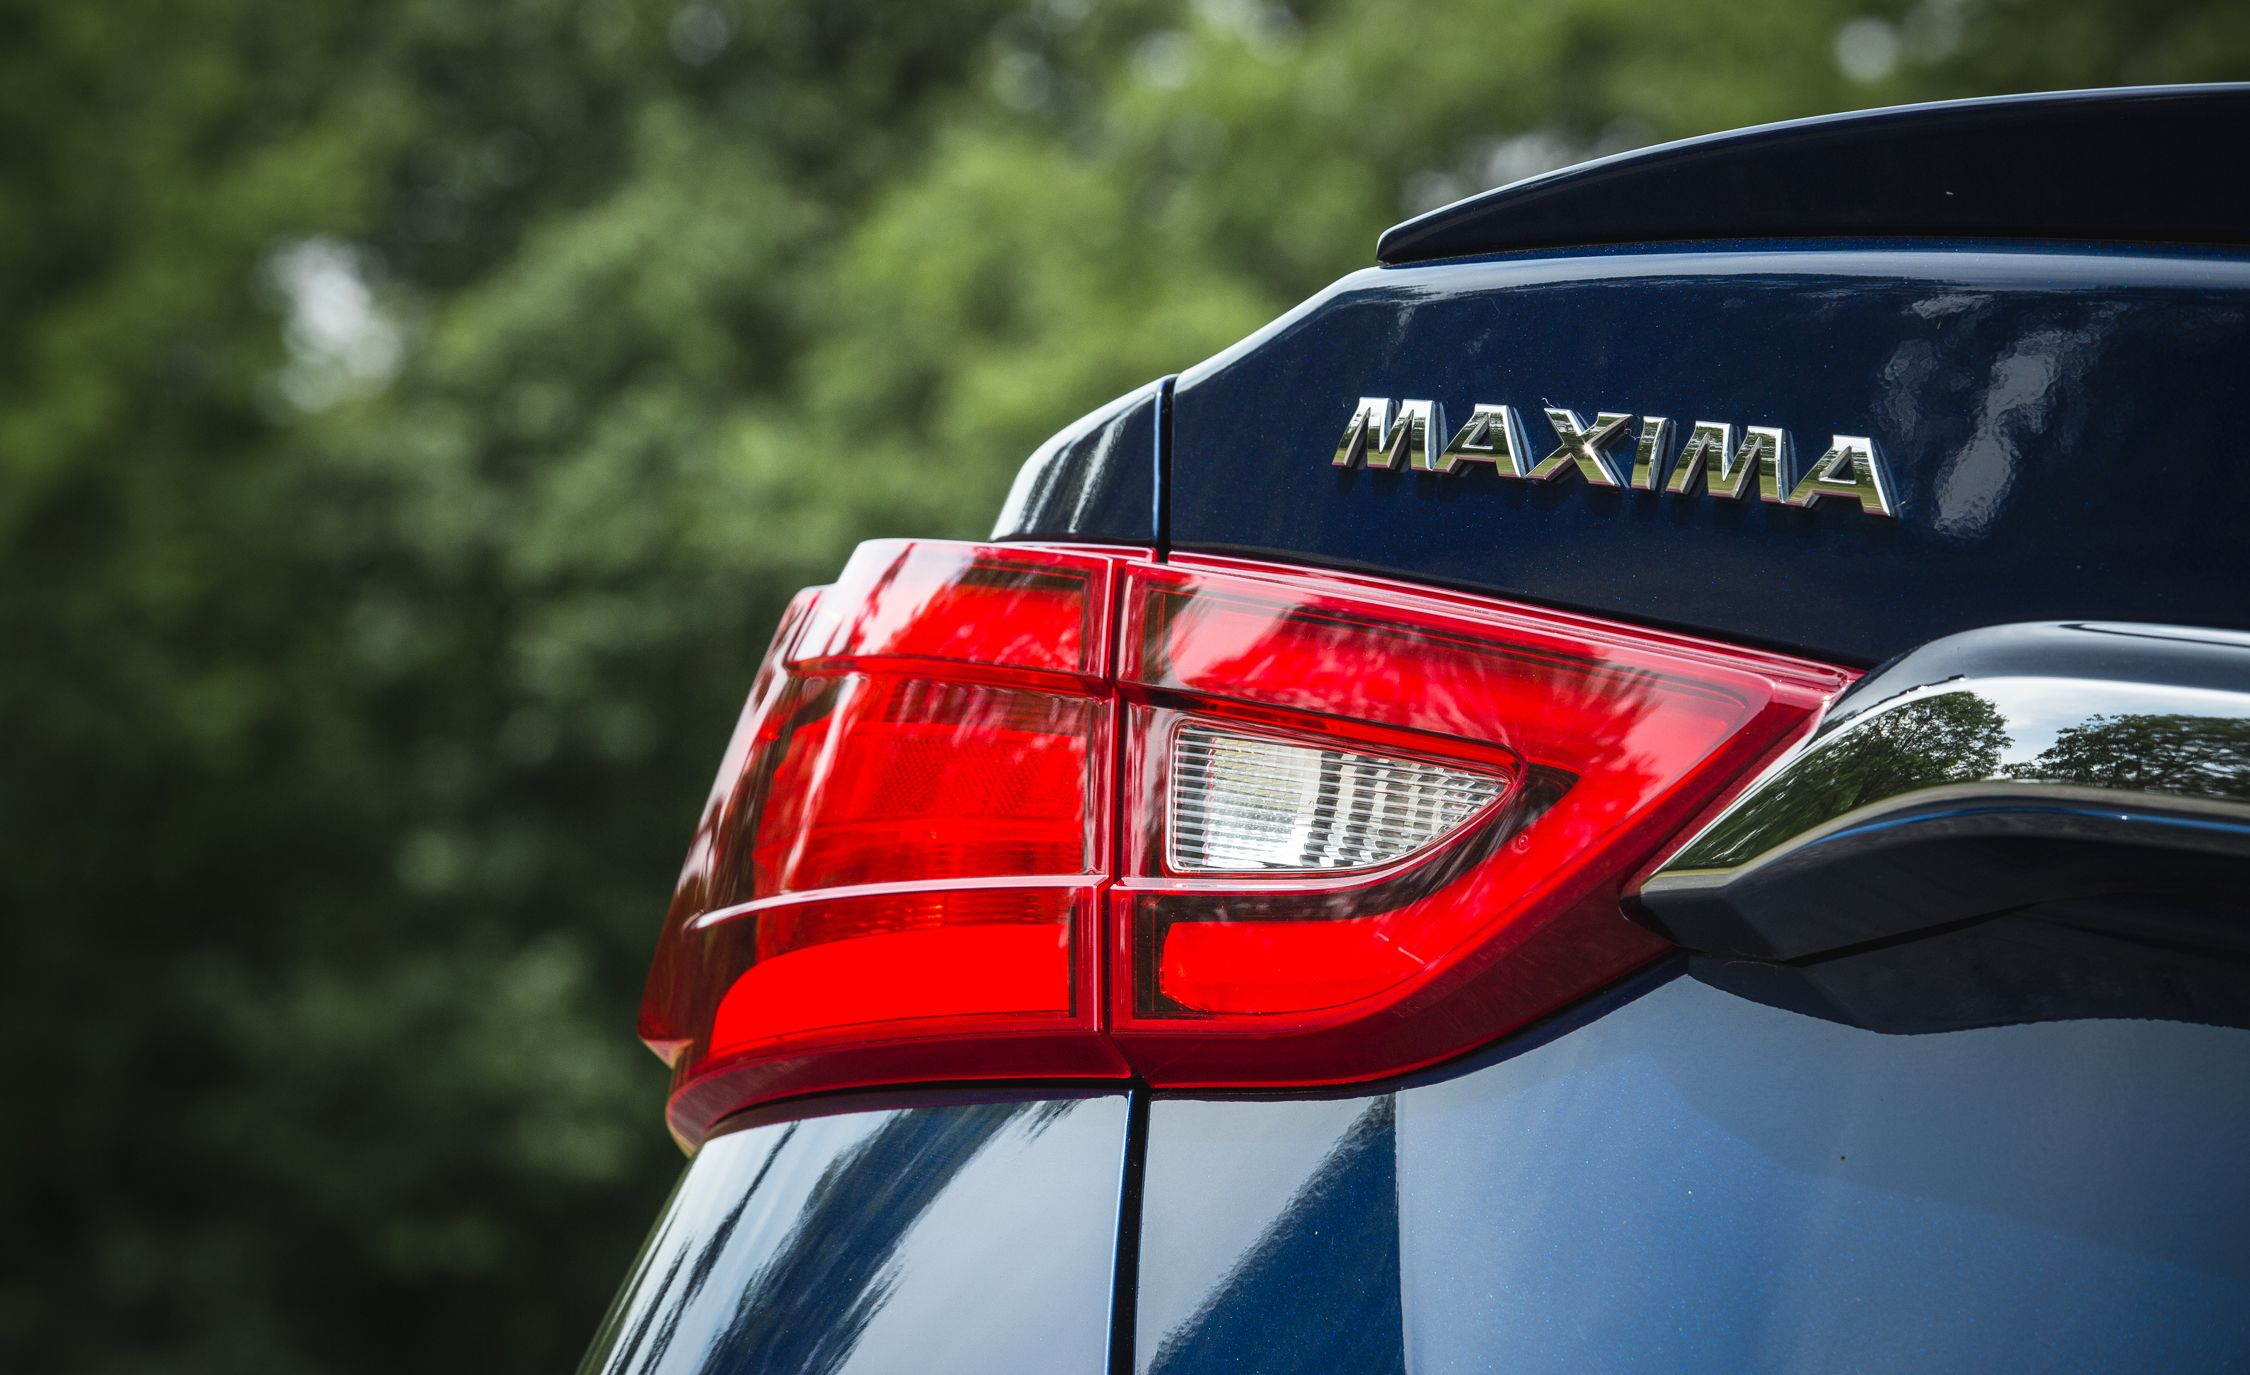 Nissan Maxima Reviews Nissan Maxima Price s and Specs